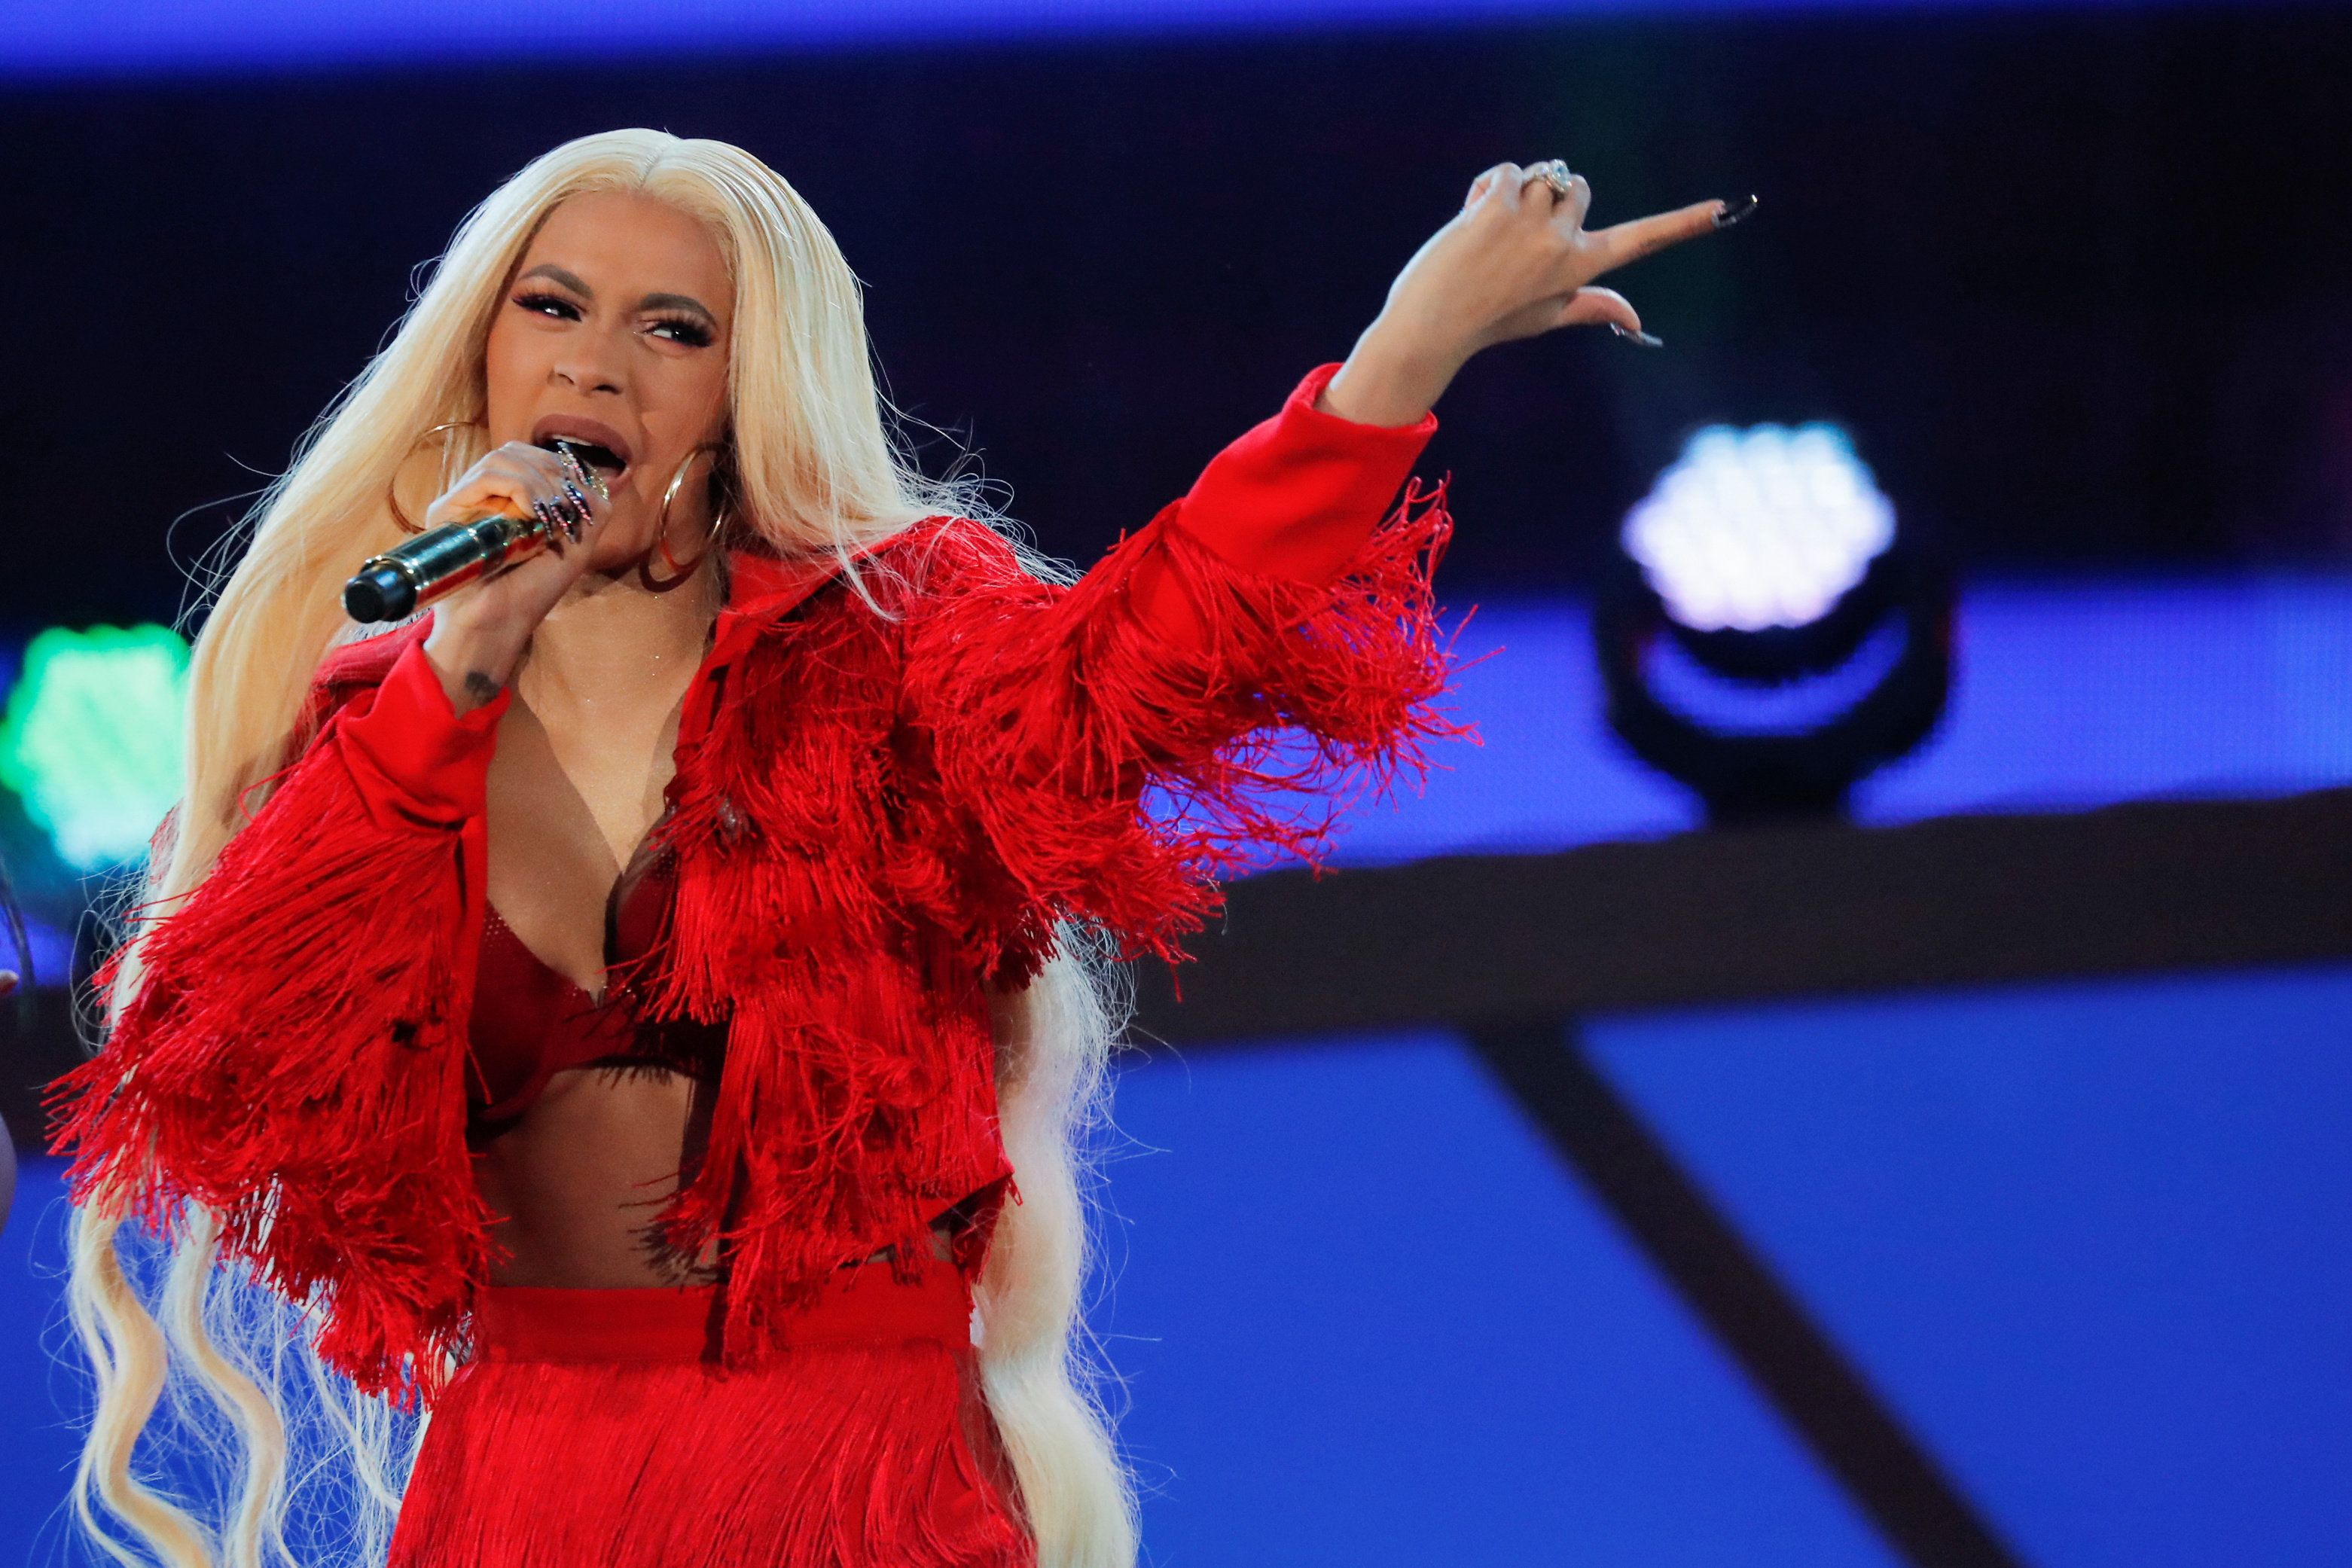 Cardi B performs at the Global Citizen Festival concert in Central Park in New York City, New York, U.S., September 29, 2018. REUTERS/Caitlin Ochs